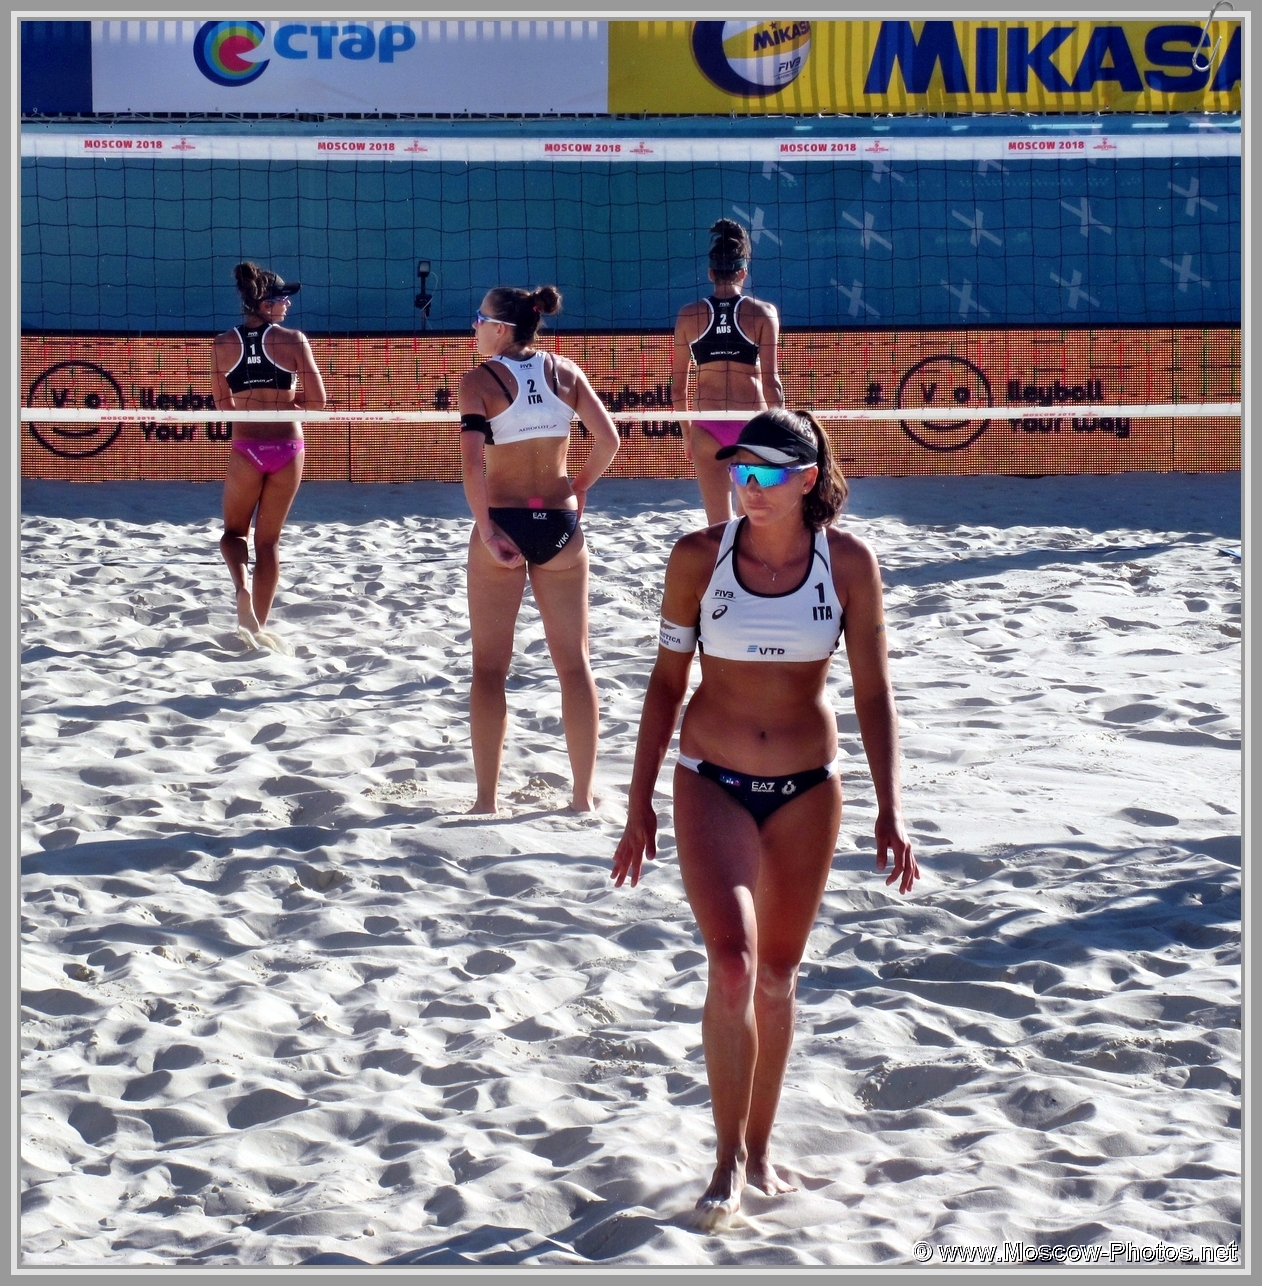 Marta Menegatti and Viktoria Orsi Toth - Italian Team at FIVB Beach Volleyball World Tour in Moscow 2018